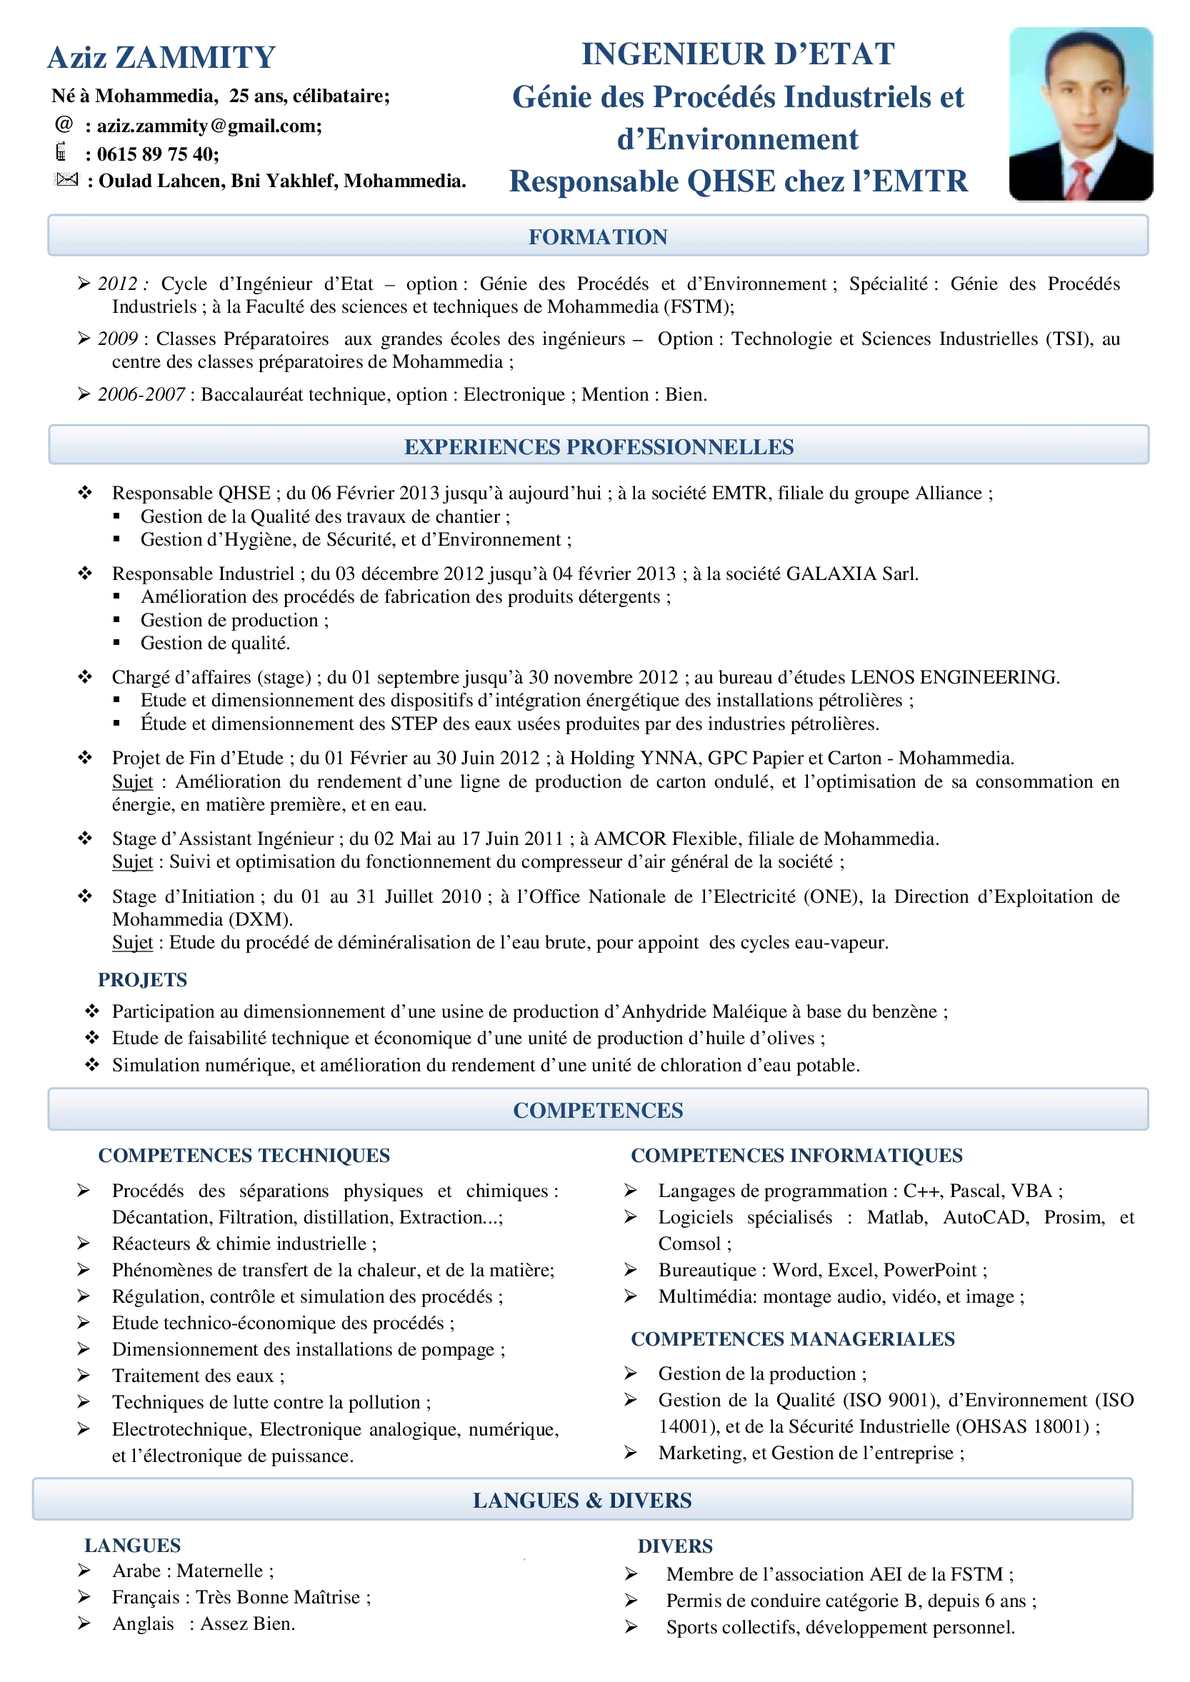 cv ingenieur securite